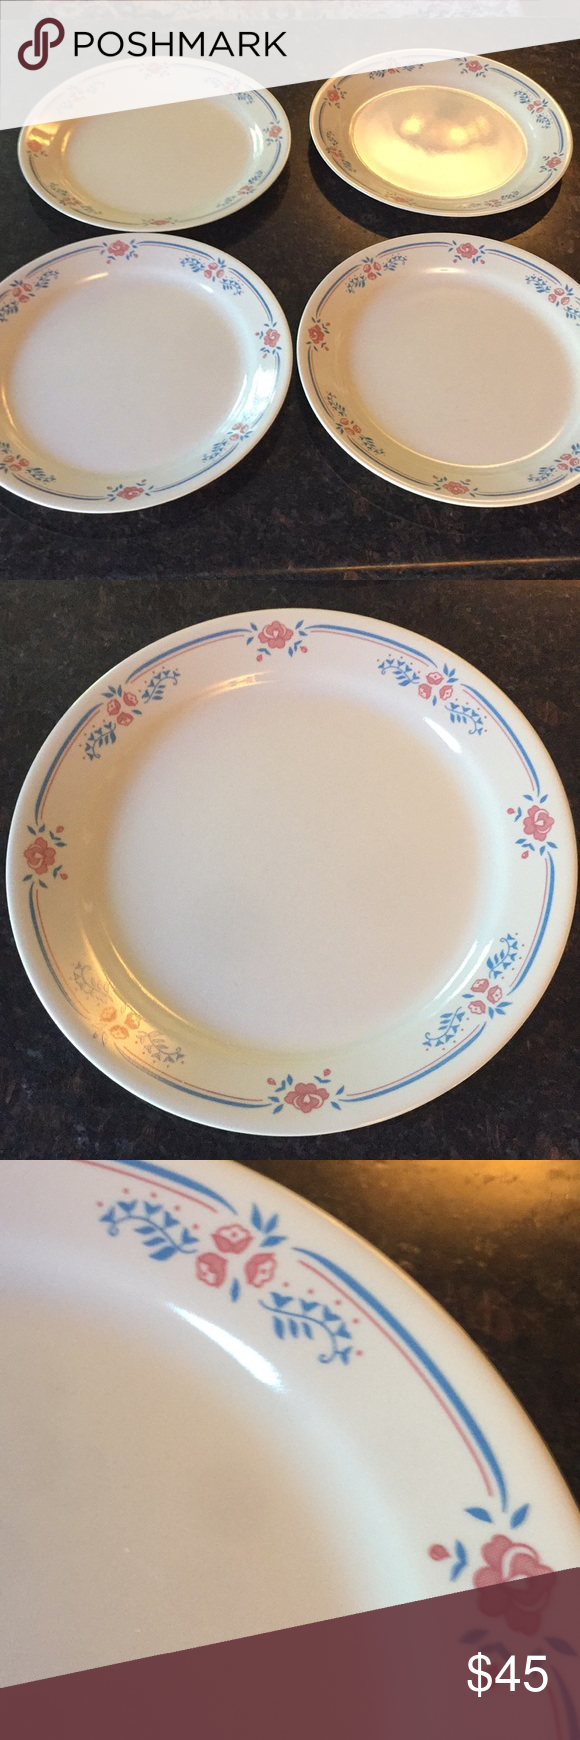 4 Corelle Embroidery Dinner Plates 10 1 4 With Images Corelle Dinnerware Dinner Plates Corelle